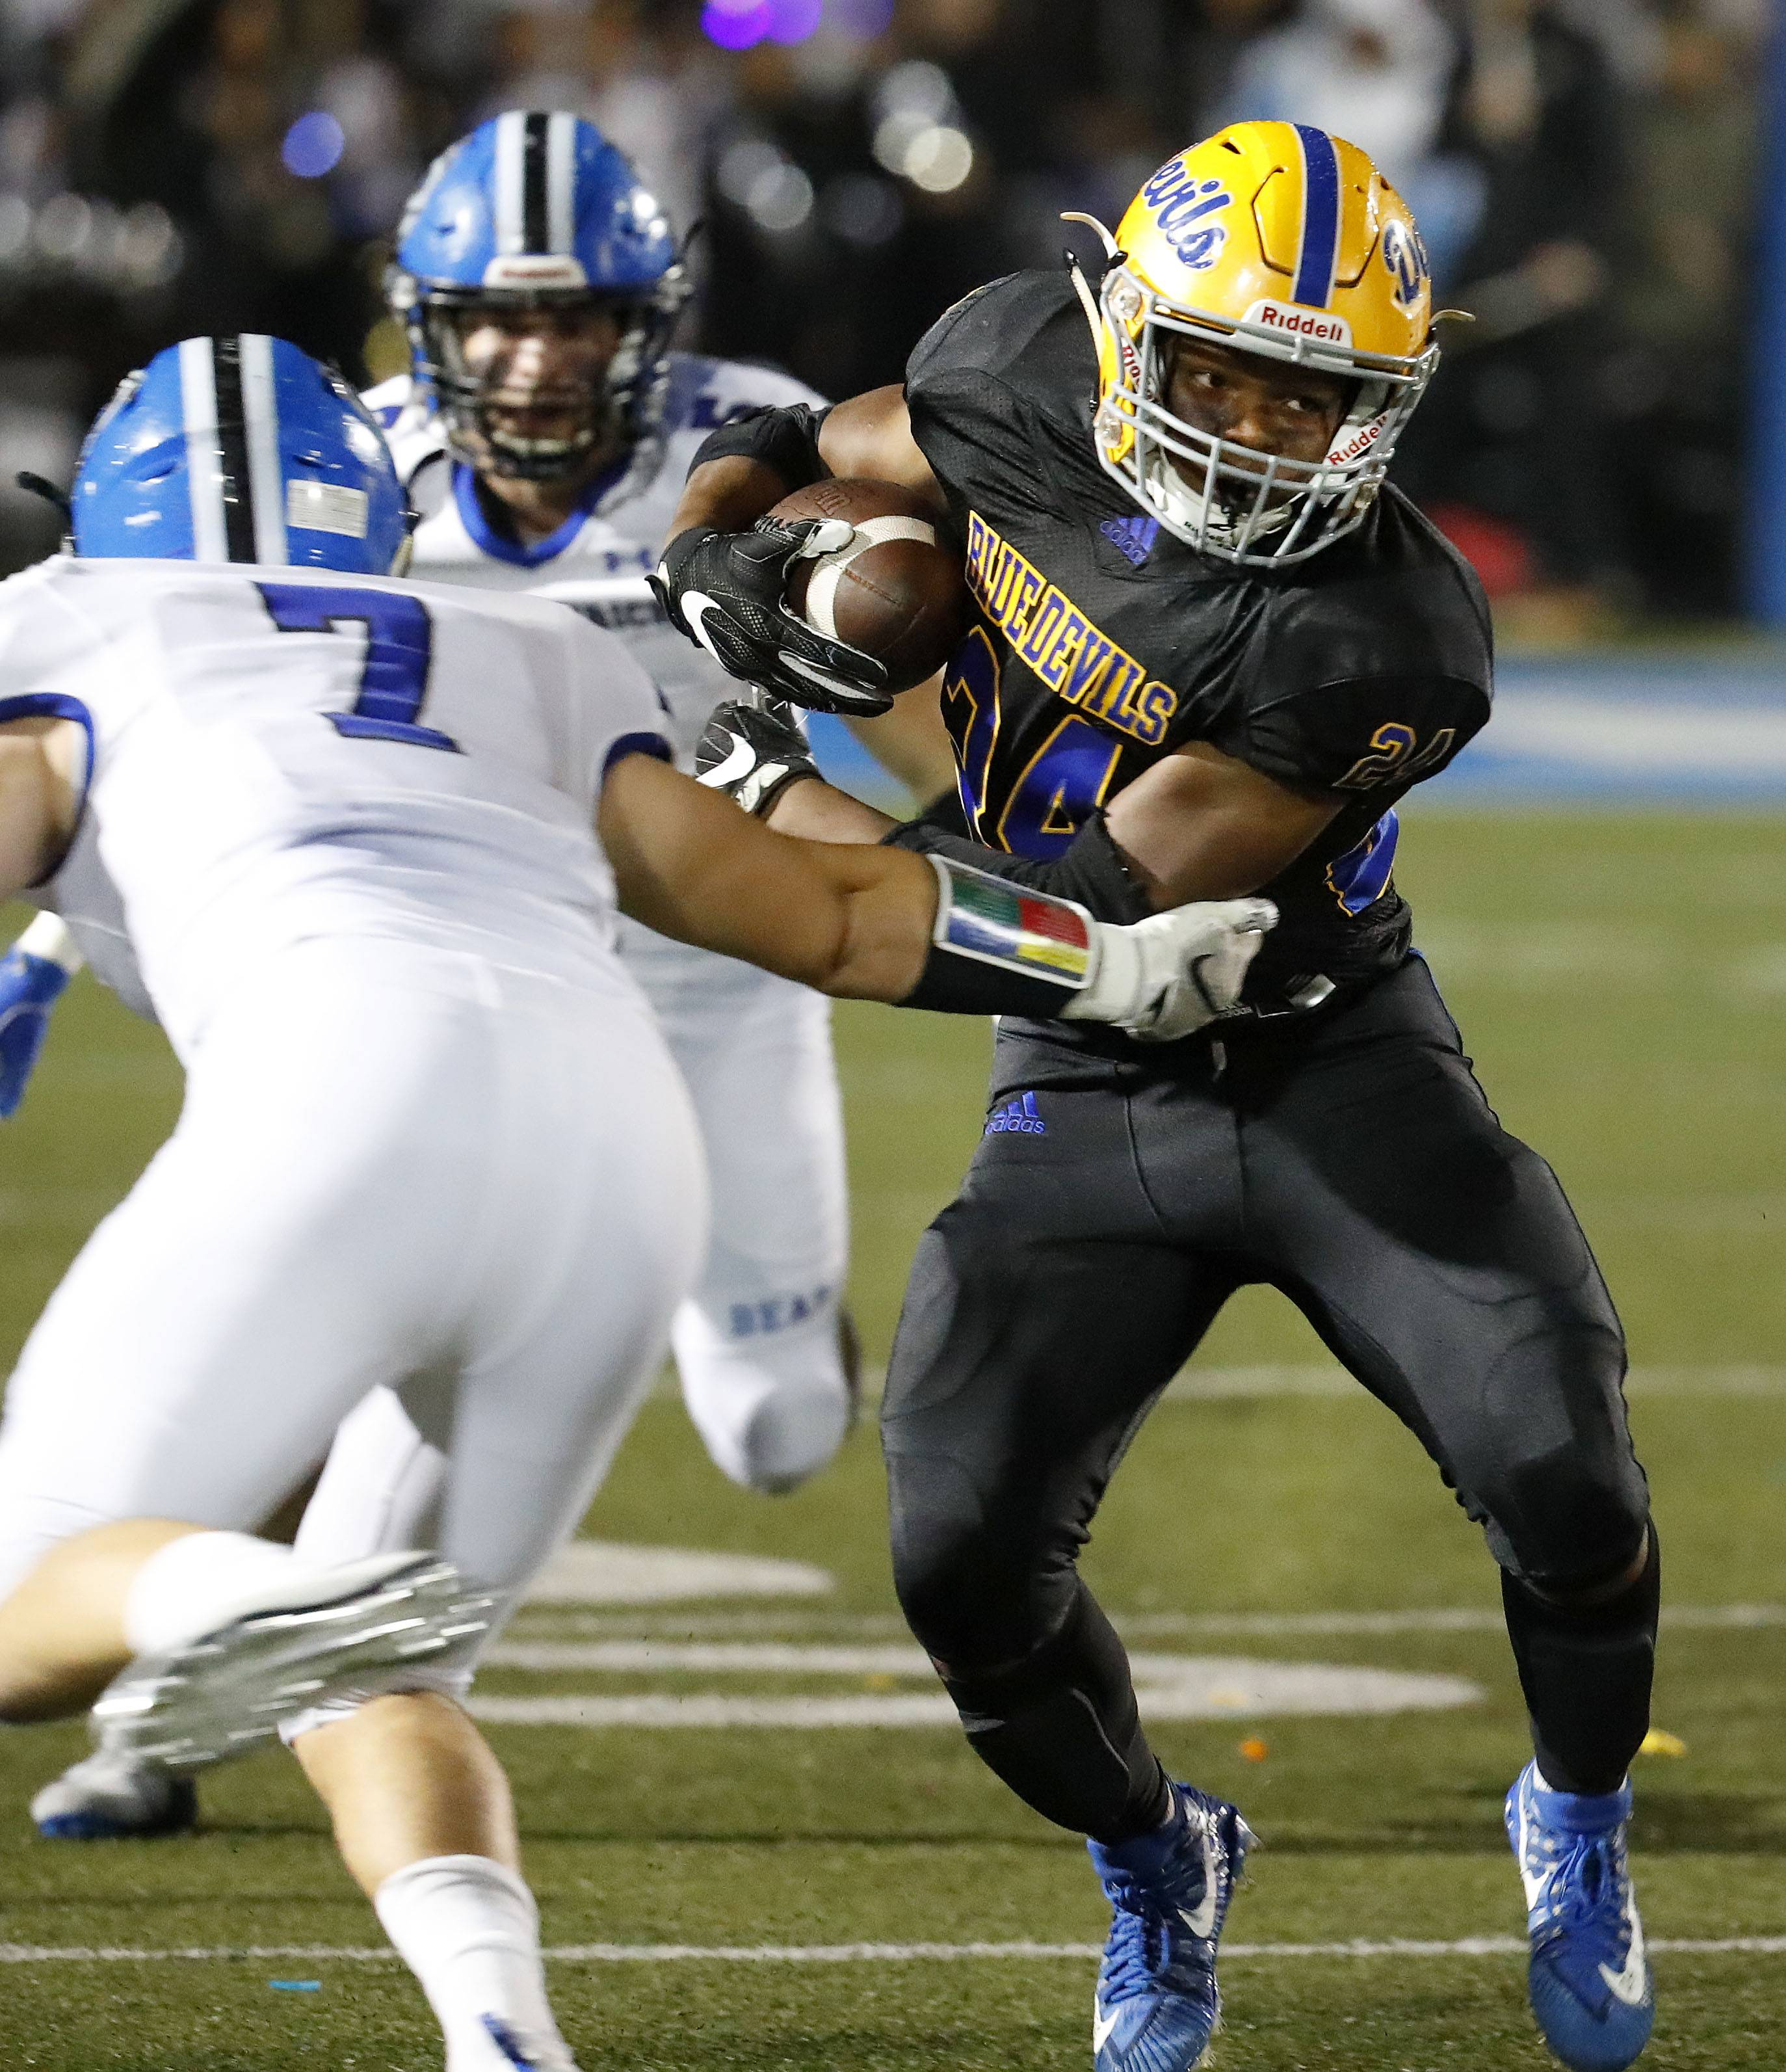 Warren's Martin Walker Jr., right, gets past Lake Zurich's Bryan Sanborn last week. Warren plays Stevenson Friday night for the North Suburban Conference title.